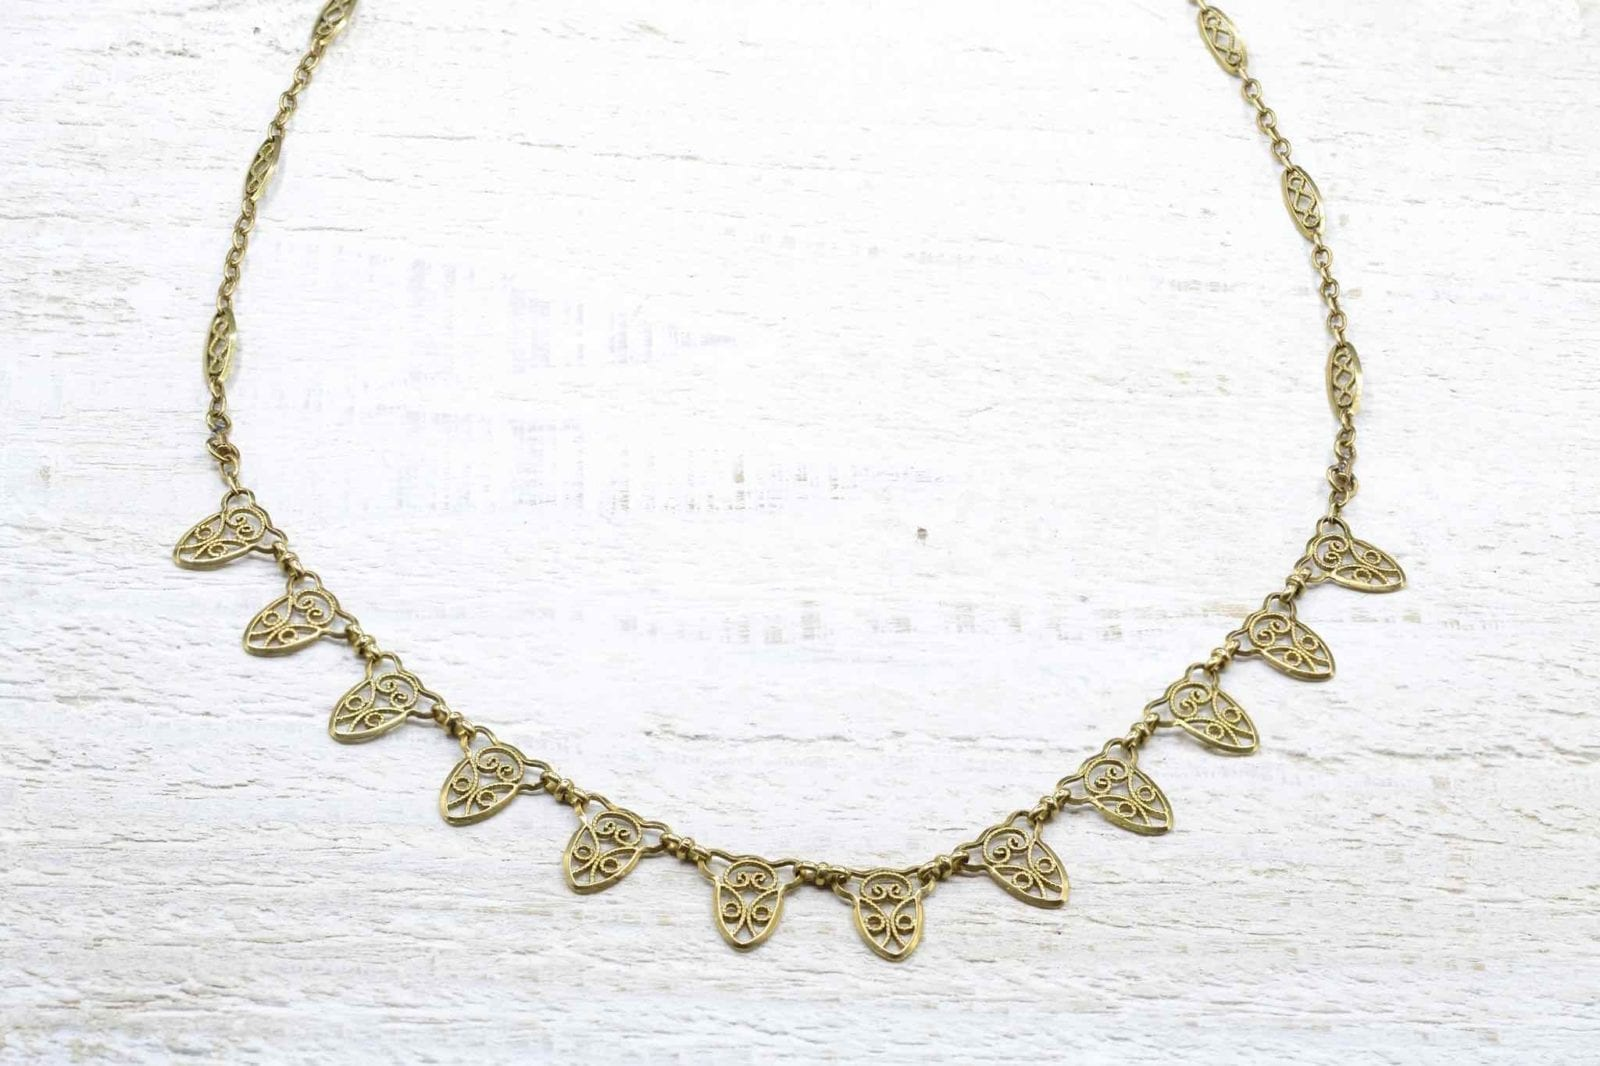 Collier anciens